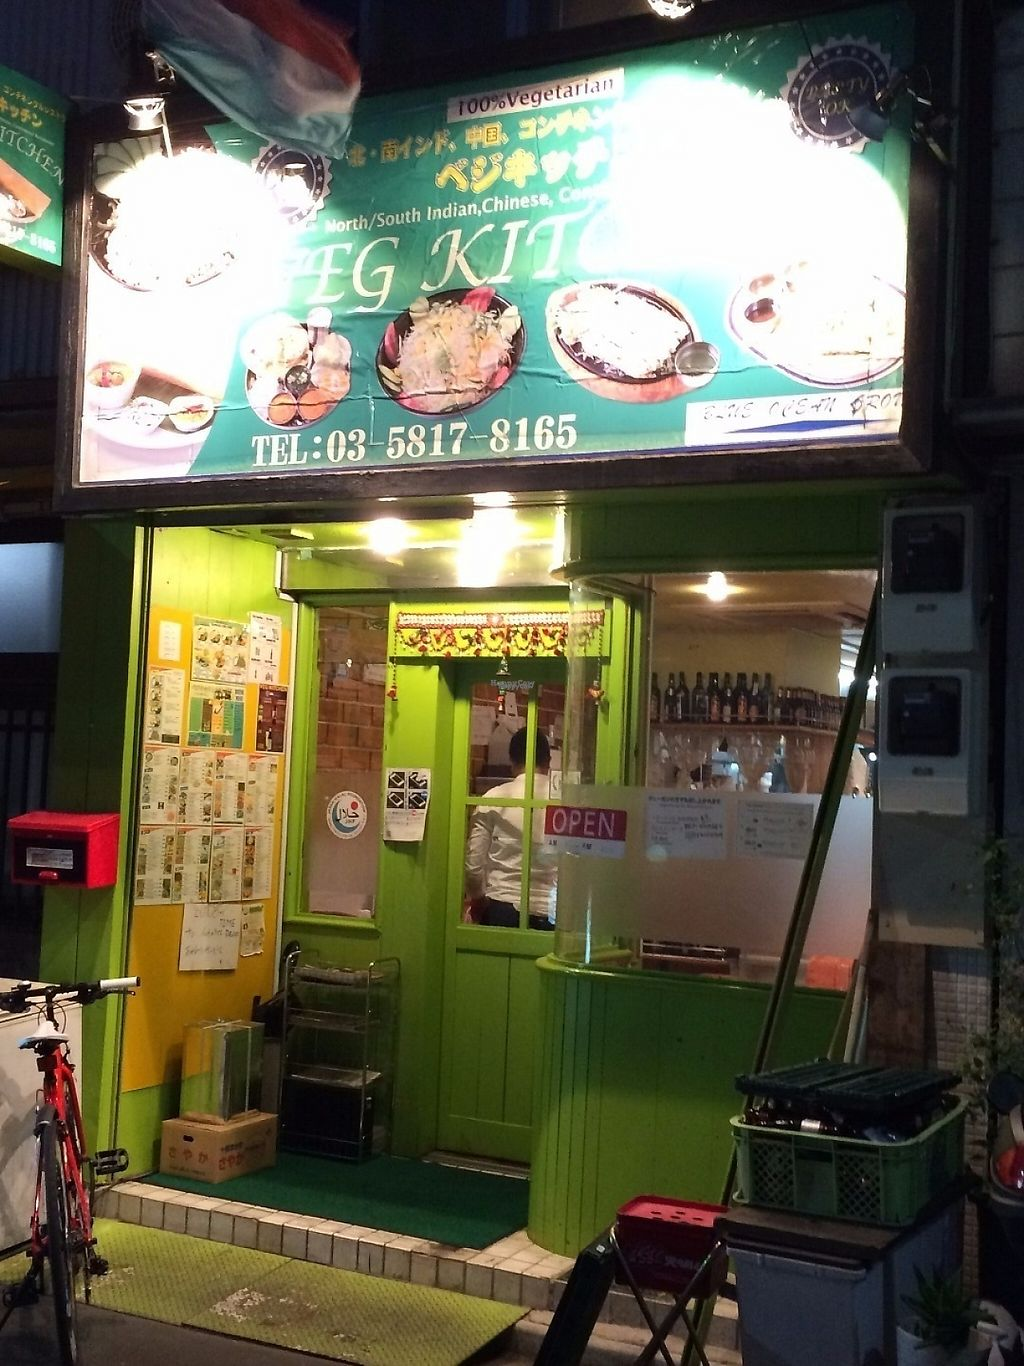 """Photo of Veg Kitchen  by <a href=""""/members/profile/Taiki"""">Taiki</a> <br/>outside <br/> February 16, 2017  - <a href='/contact/abuse/image/48092/227068'>Report</a>"""